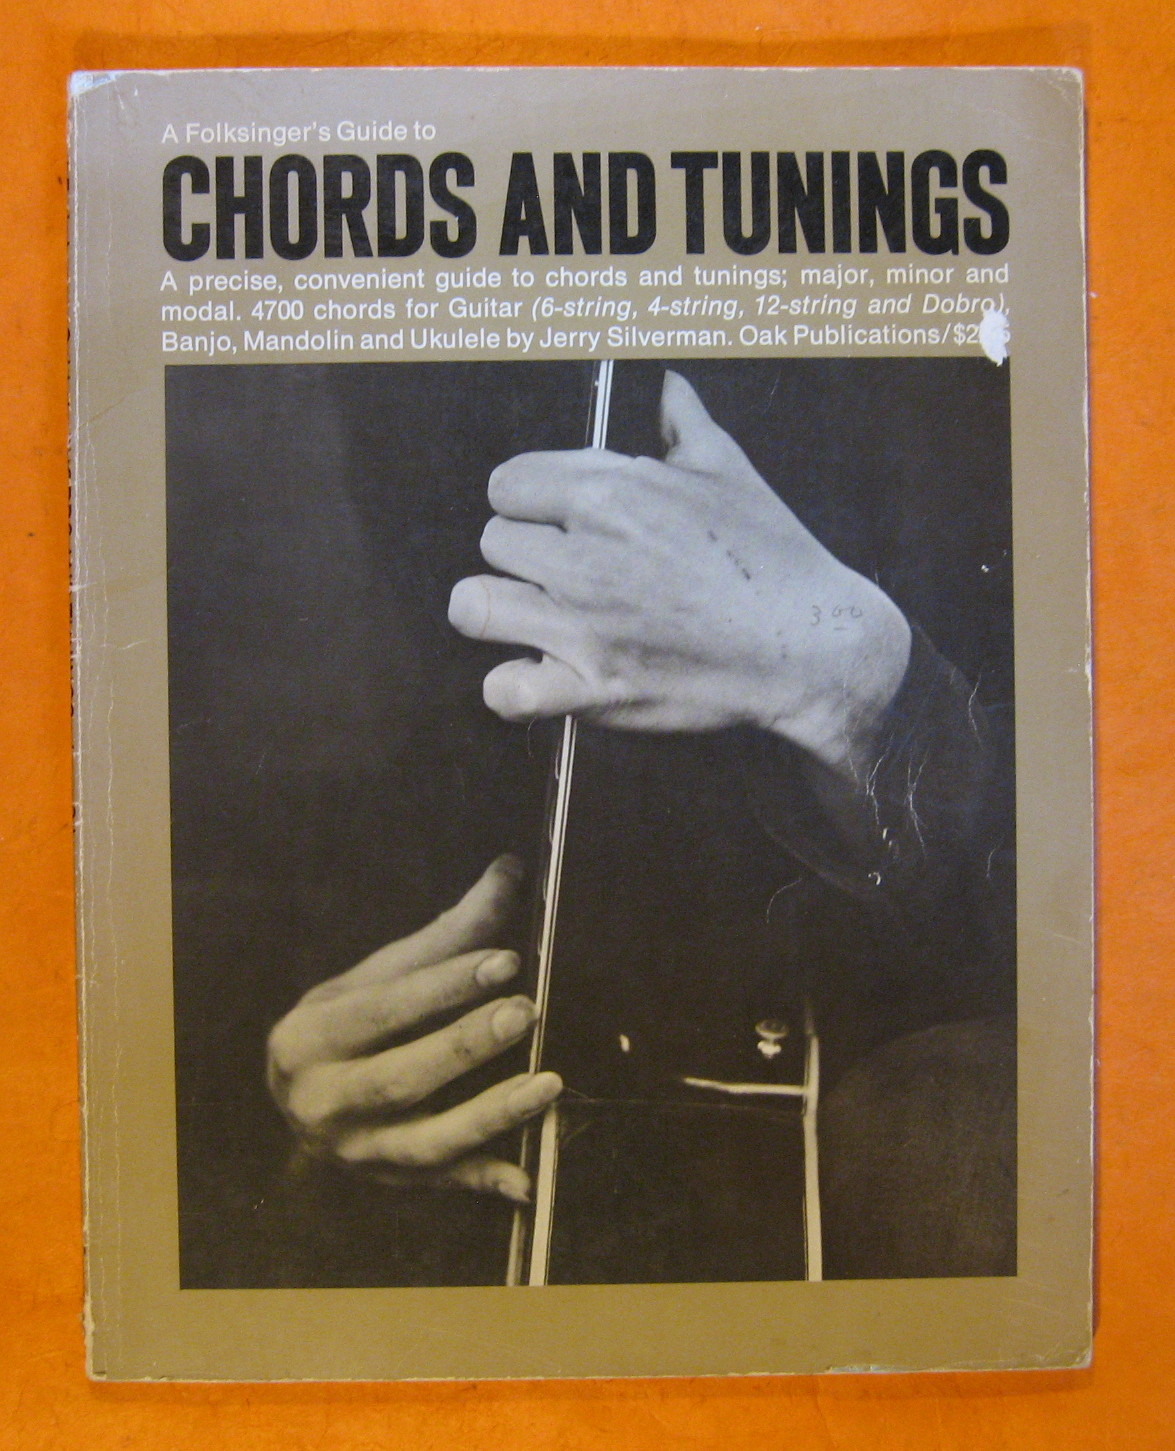 A Folksinger's Guide to Chords and Tuning, Silverman, Jerry